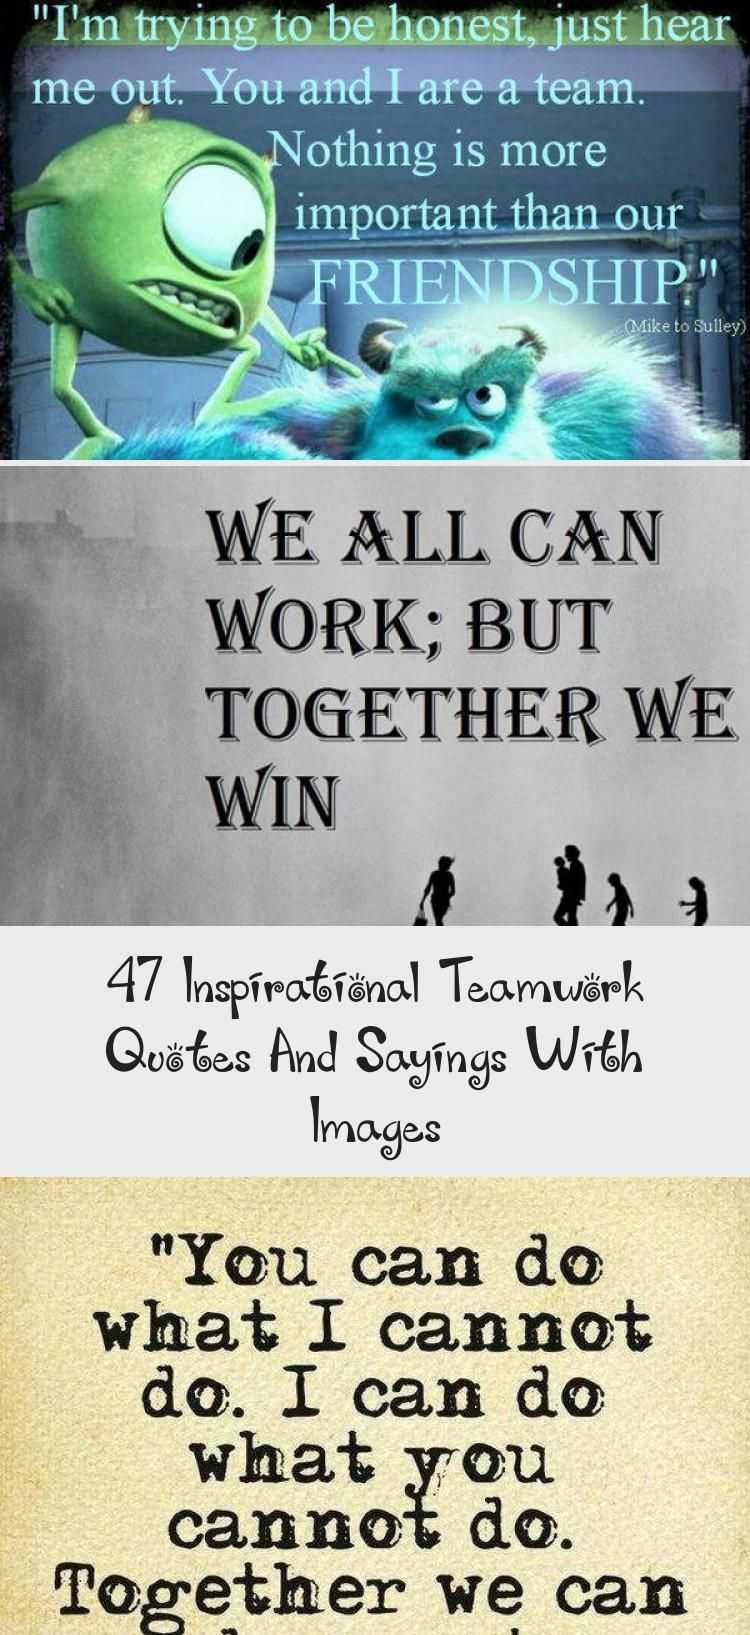 The Most Inspirational Famous And Funny Teamwork Quotes An Sayings For Sports For Teachers Teamwork Quotes Funny Teamwork Quote Inspirational Teamwork Quotes